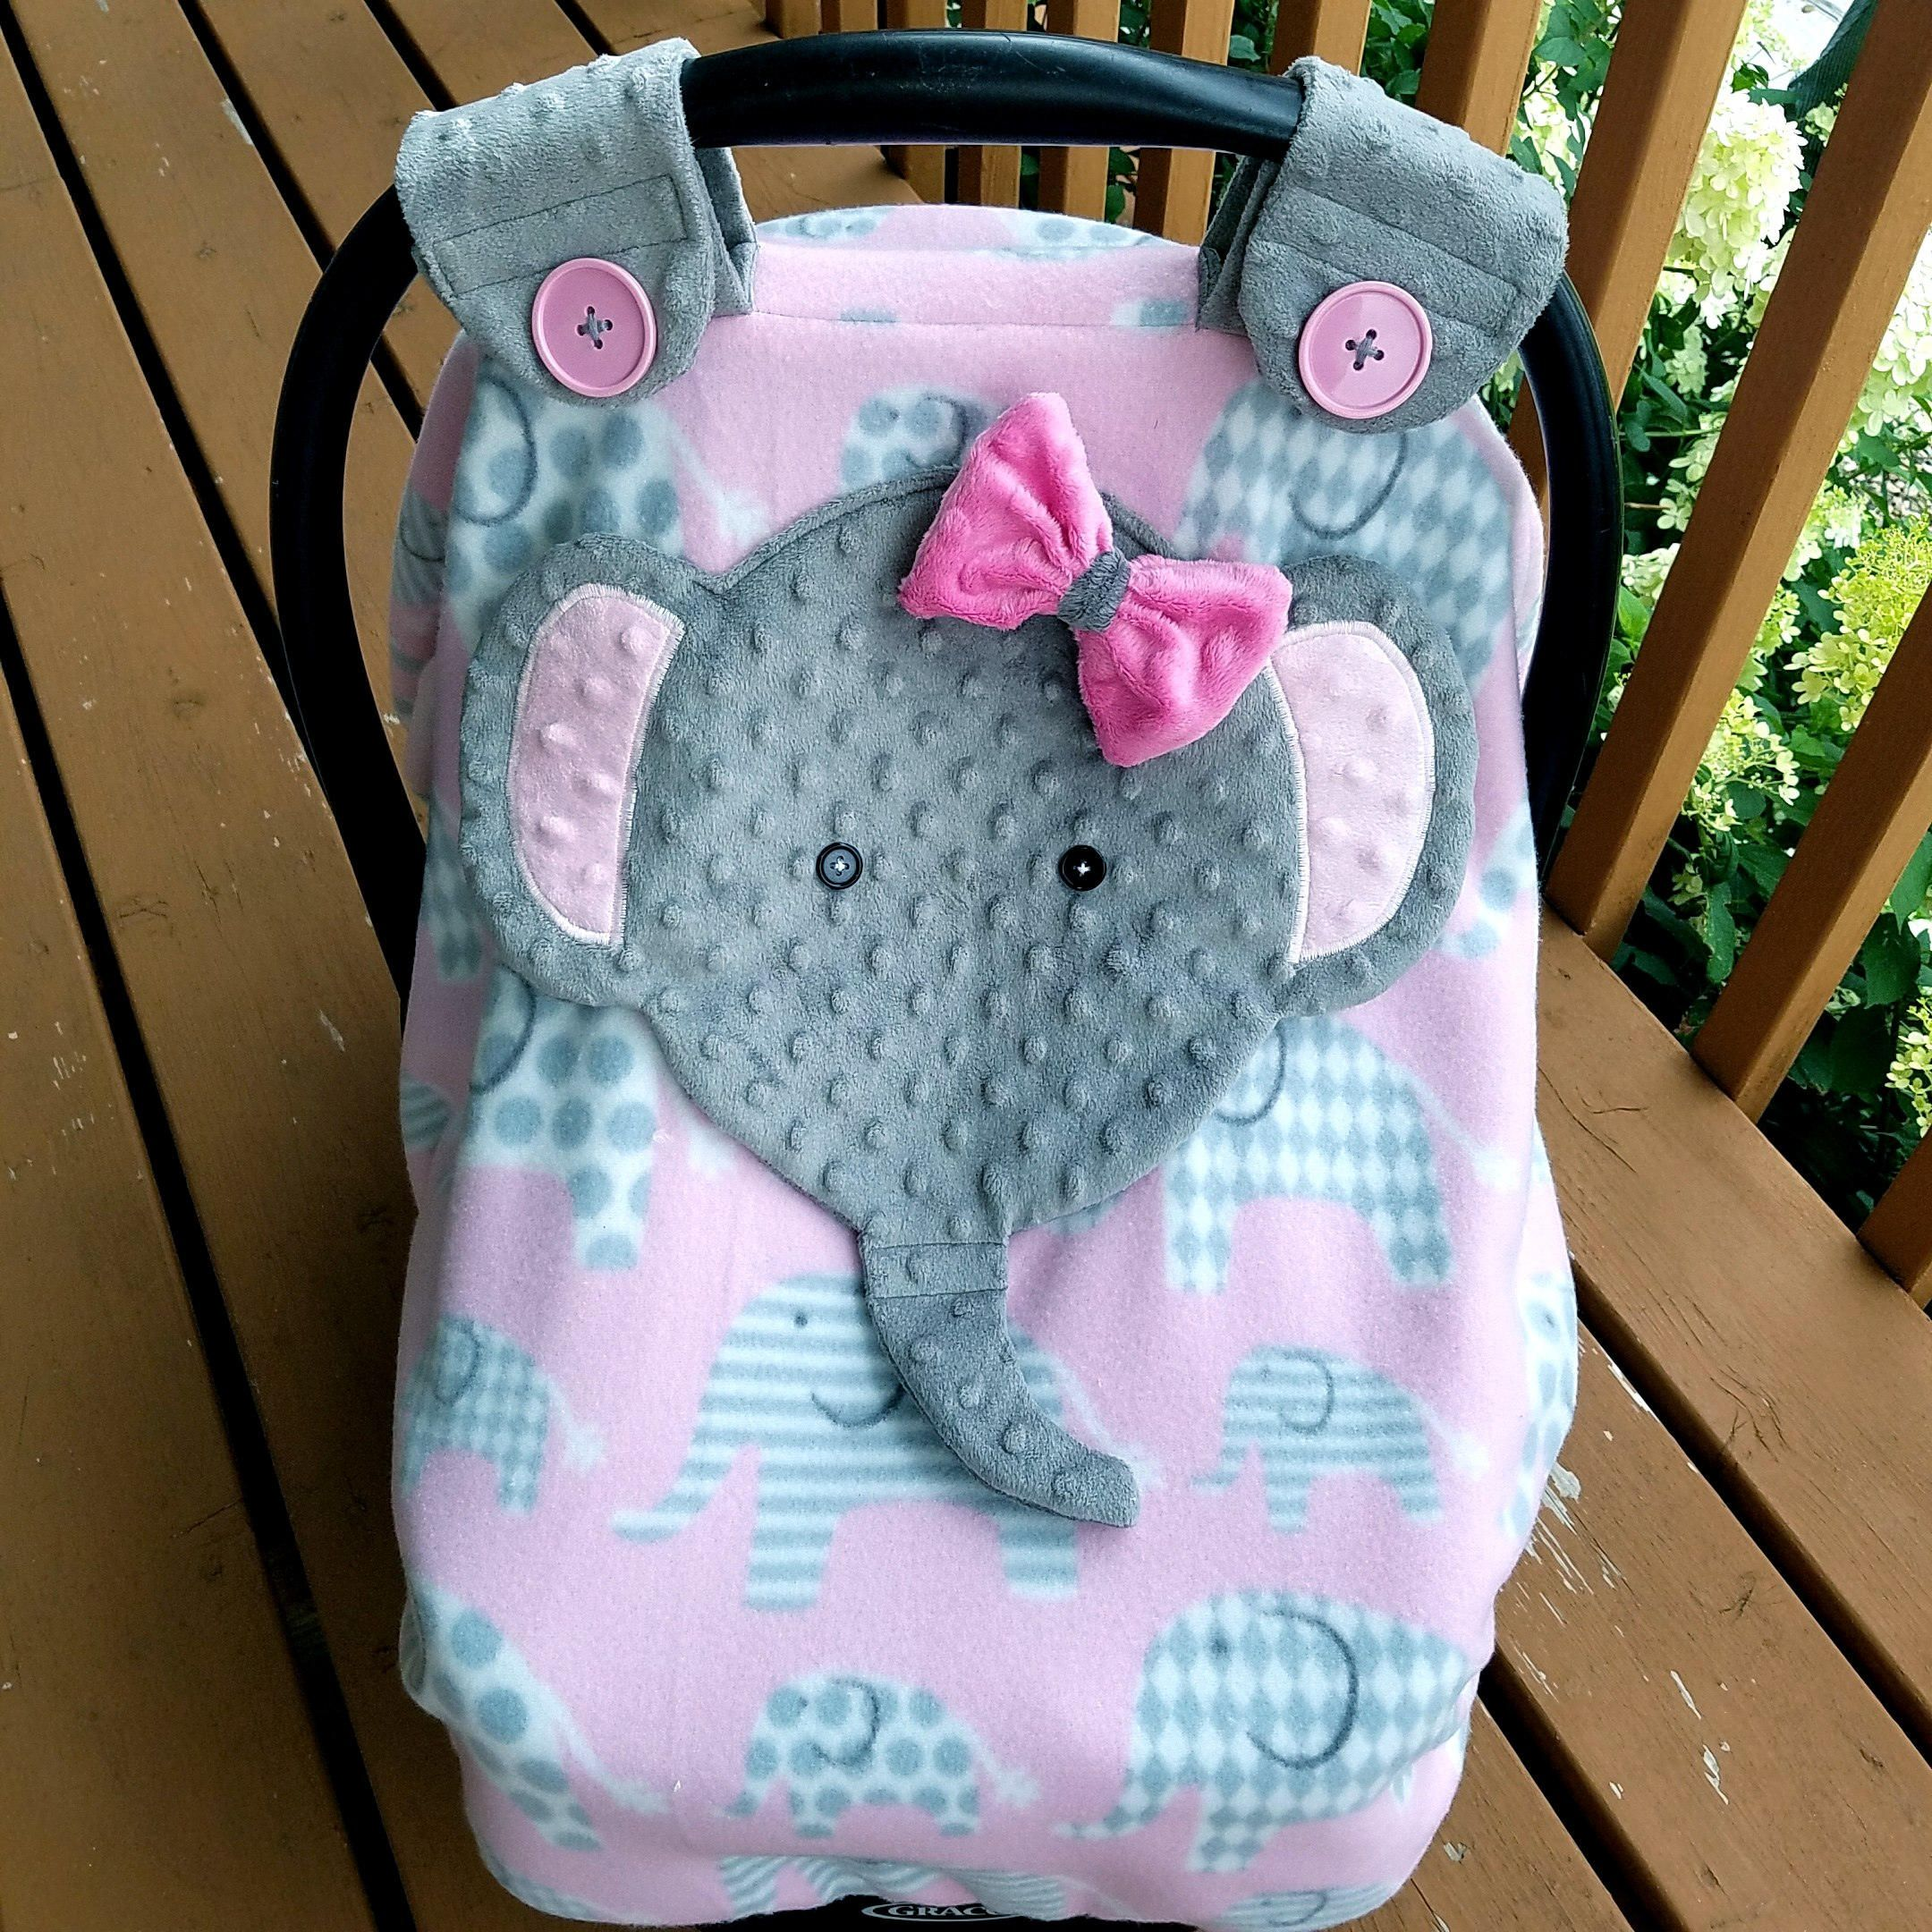 Made To Order Girls Fitted Elephant Carseat Canopy With Peek A Boo Opening Minky Fleece By Lind Baby Girl Elephant Baby Elephant Nursery Baby Girls Nursery